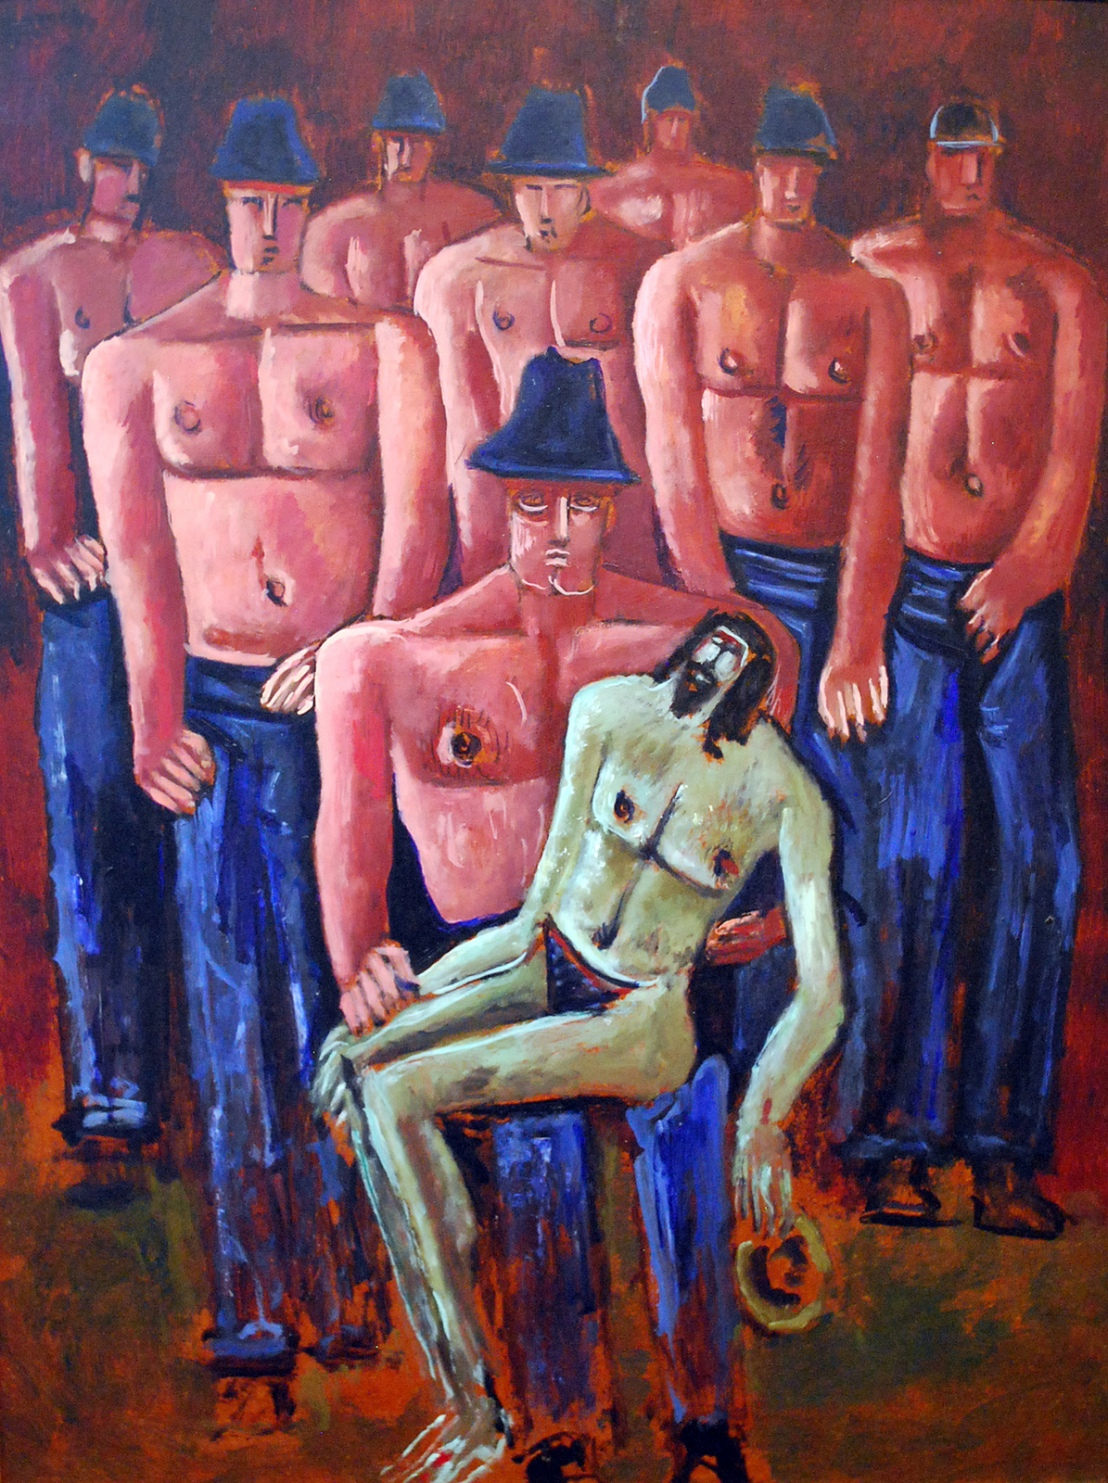 marsden-hartley-christ-held-by-half-naked-men